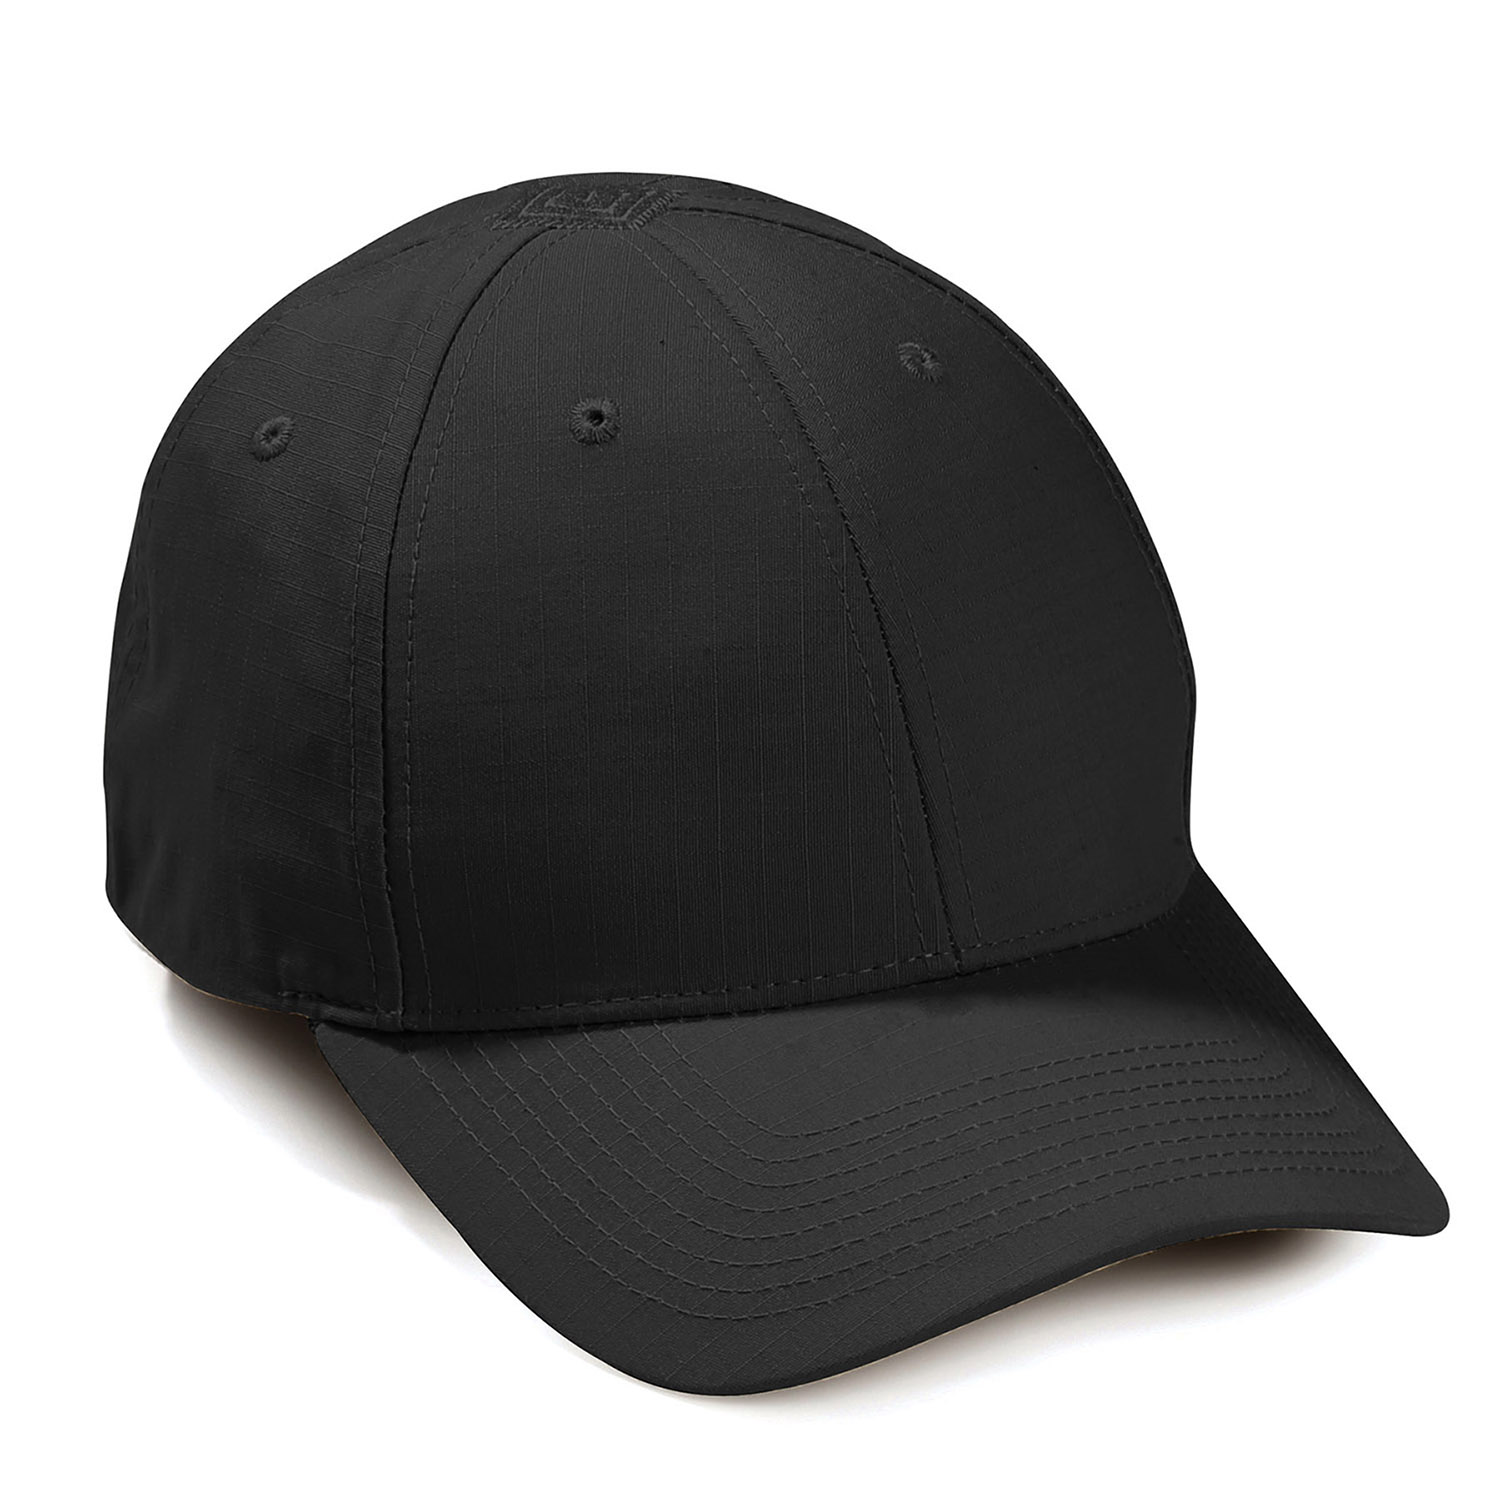 5.11 Tactical Taclite Hat